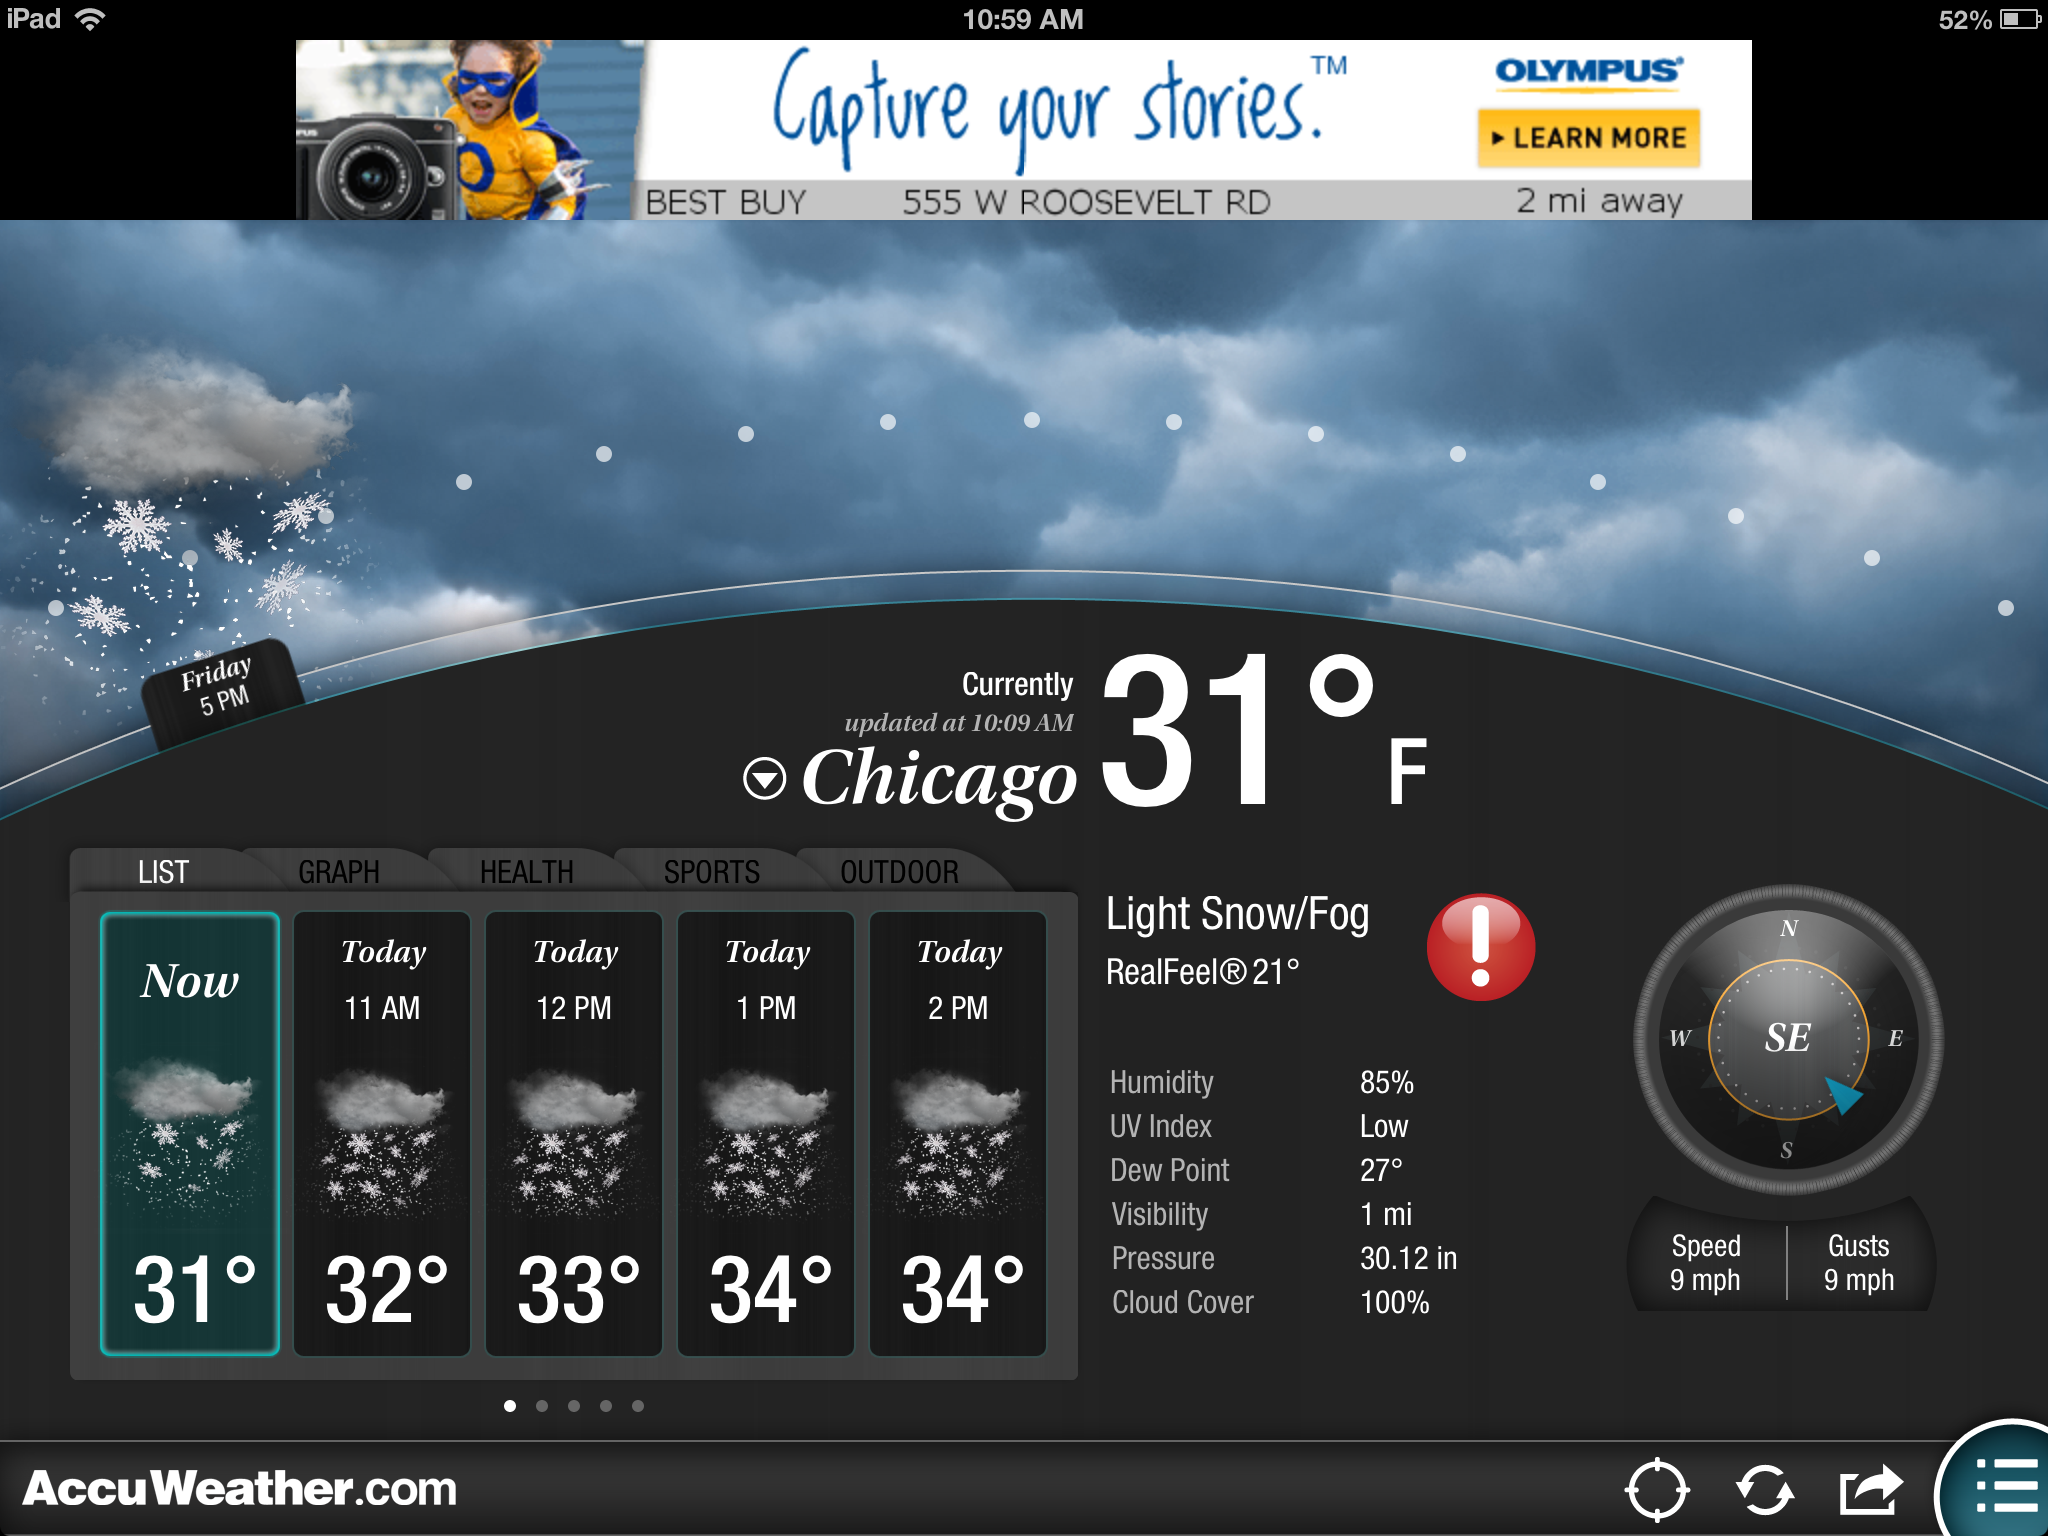 Aside from the ads—hey, it's free—AccuWeather's interface is quite slick.